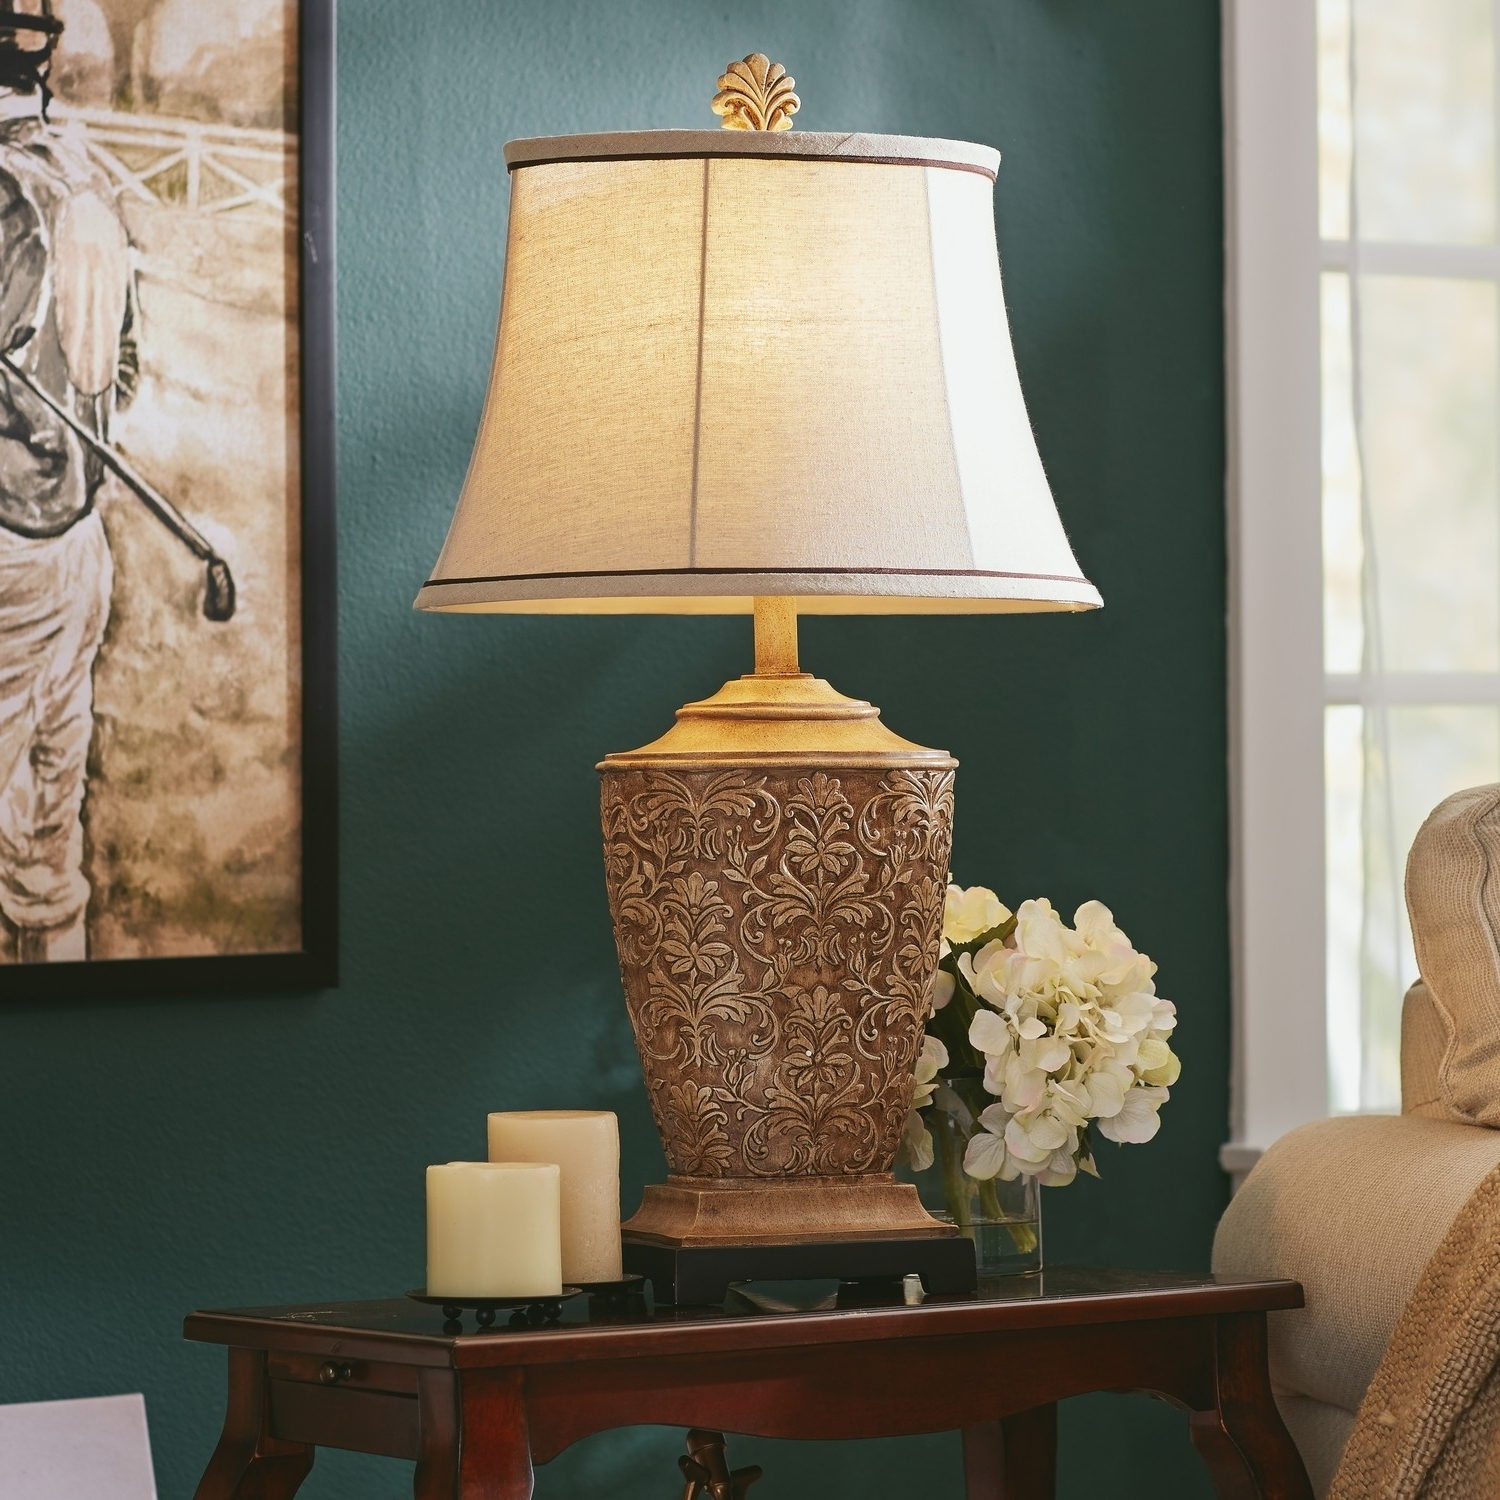 Trendy Silver Table Lamps Living Room Table Lamps For Living Room Regarding Table Lamps For Traditional Living Room (View 5 of 20)